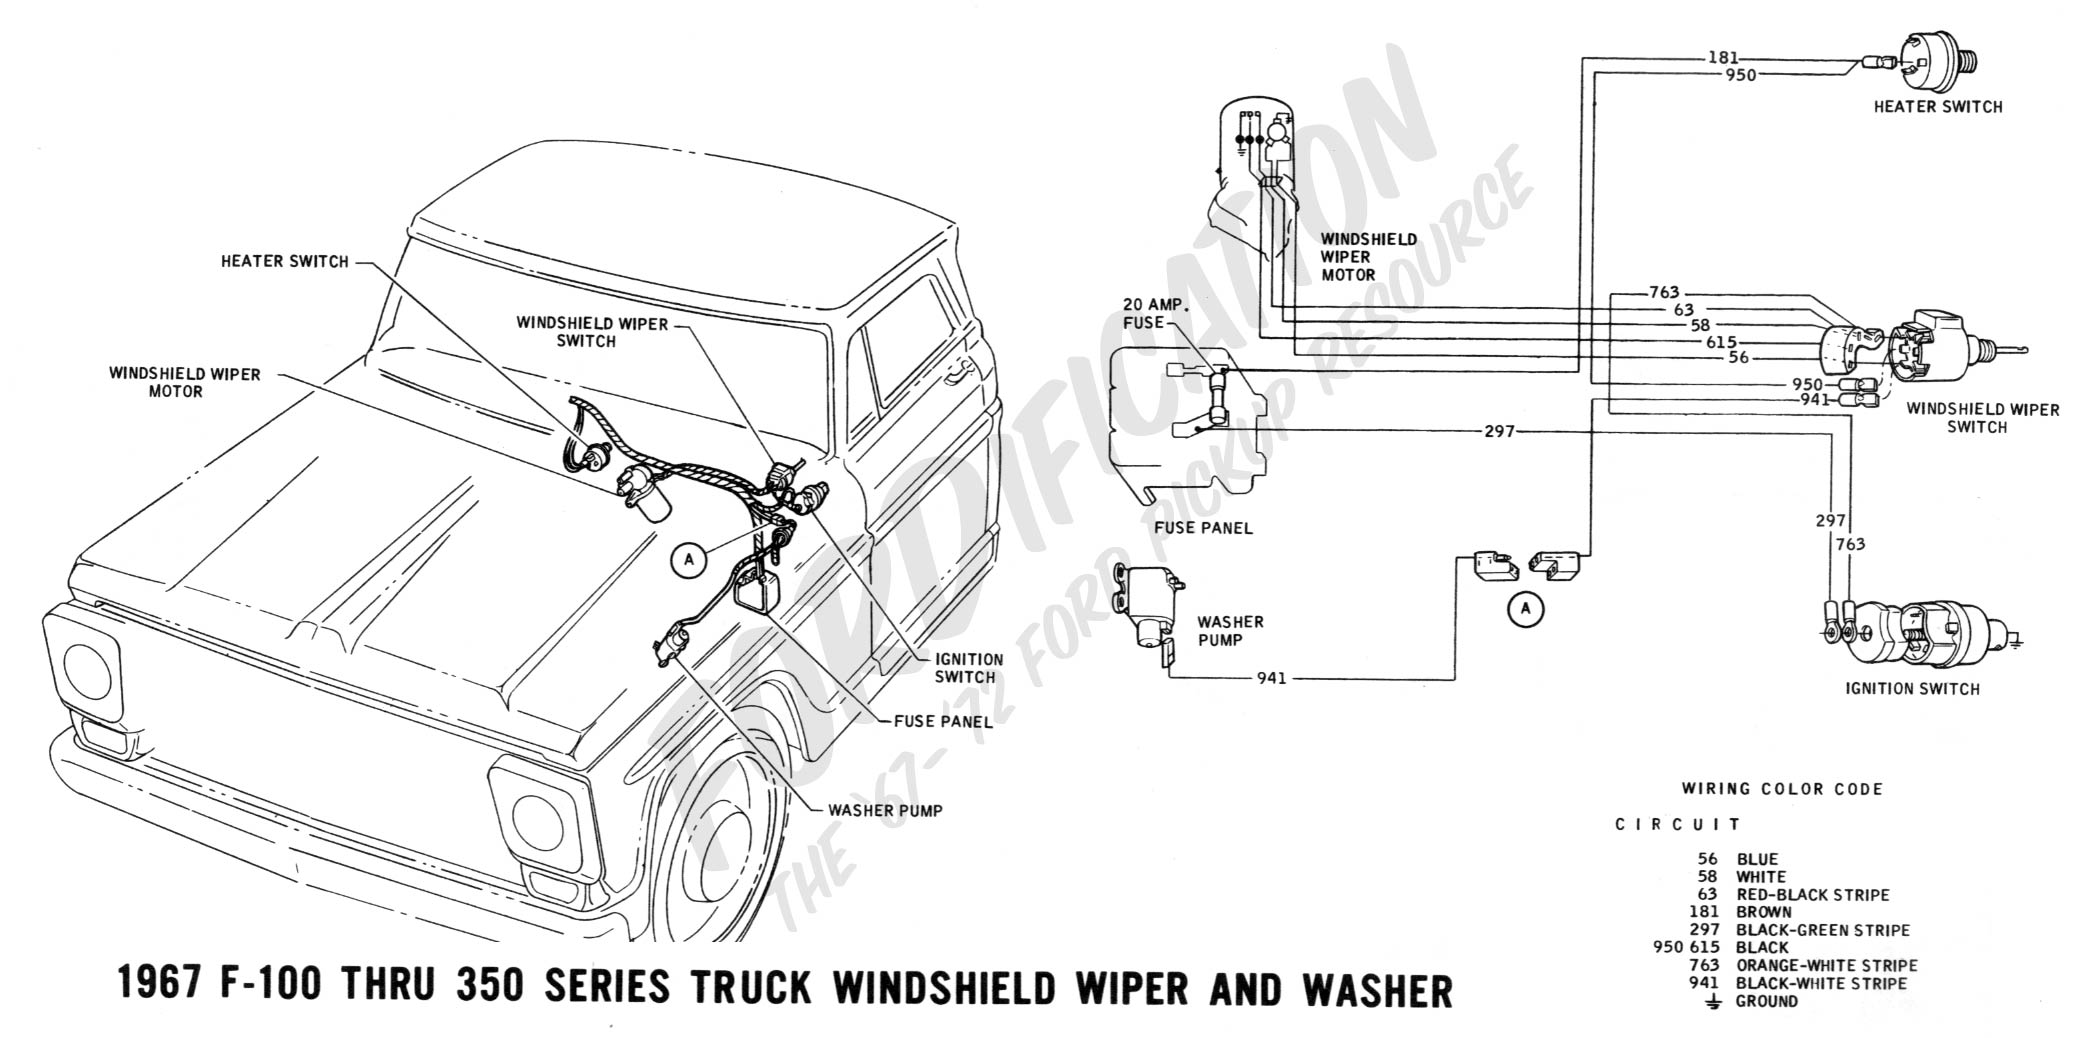 [SCHEMATICS_4UK]  67 F100 Fuse Box Three Pole Toggle Switch Wiring Diagram -  hazzard.astrea-construction.fr | 1966 Ford Truck Fuse Box |  | Begeboy Wiring Diagram Source - ASTREA CONSTRUCTION